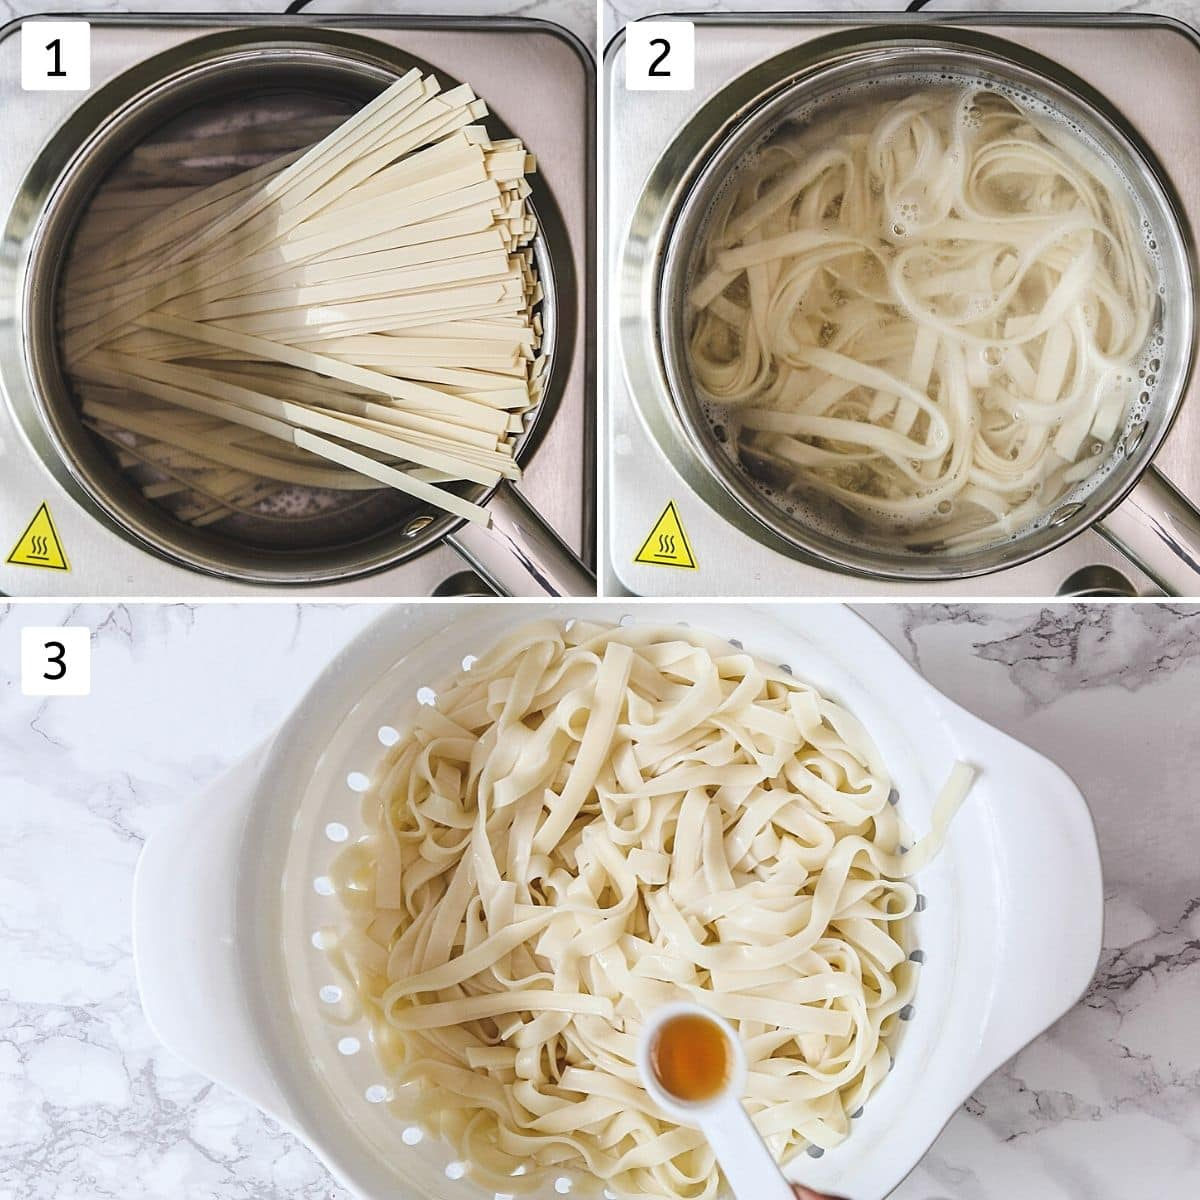 Collage of 3 steps showing adding noodles to boiling water, cooking noodles, adding oil to cooked noodles.